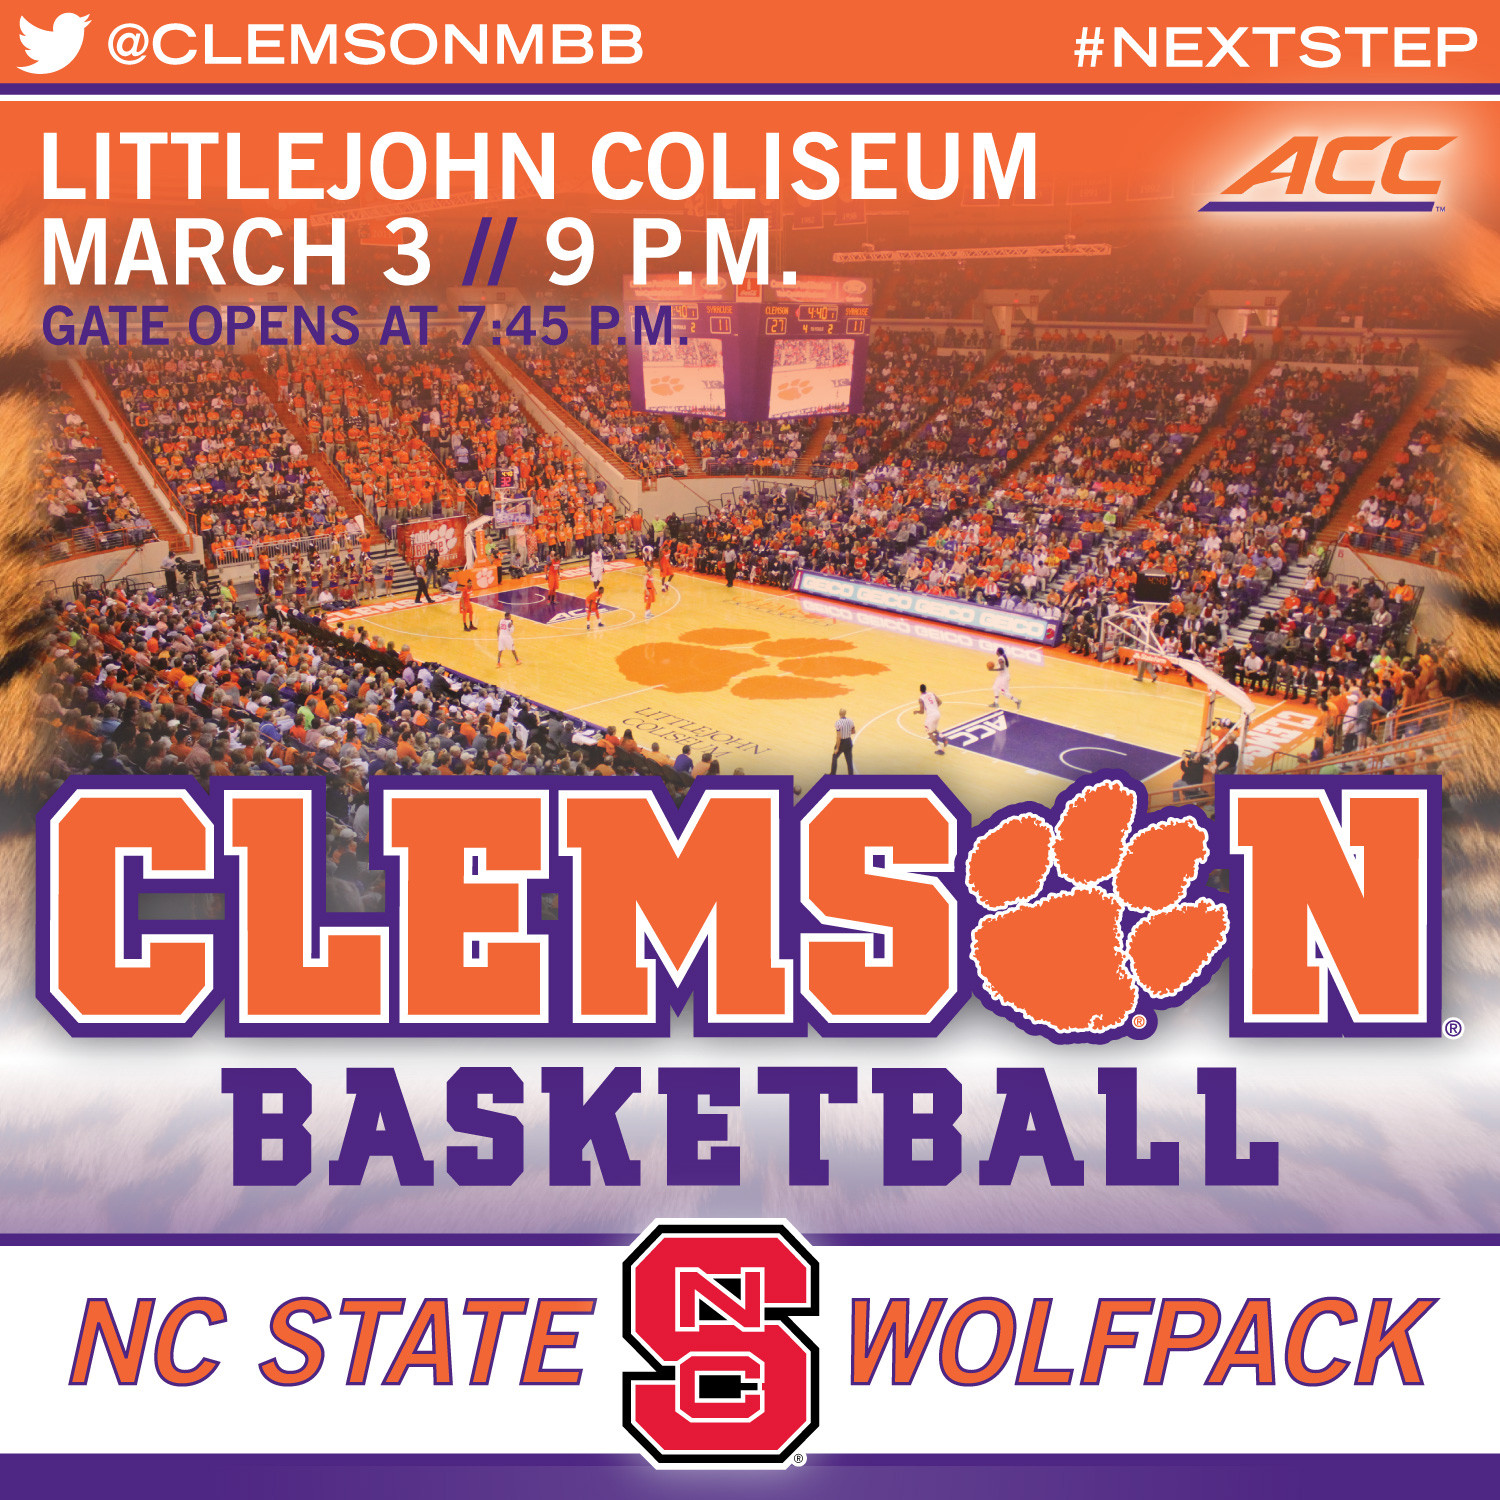 Tigers Close Out Littlejohn vs. NC State